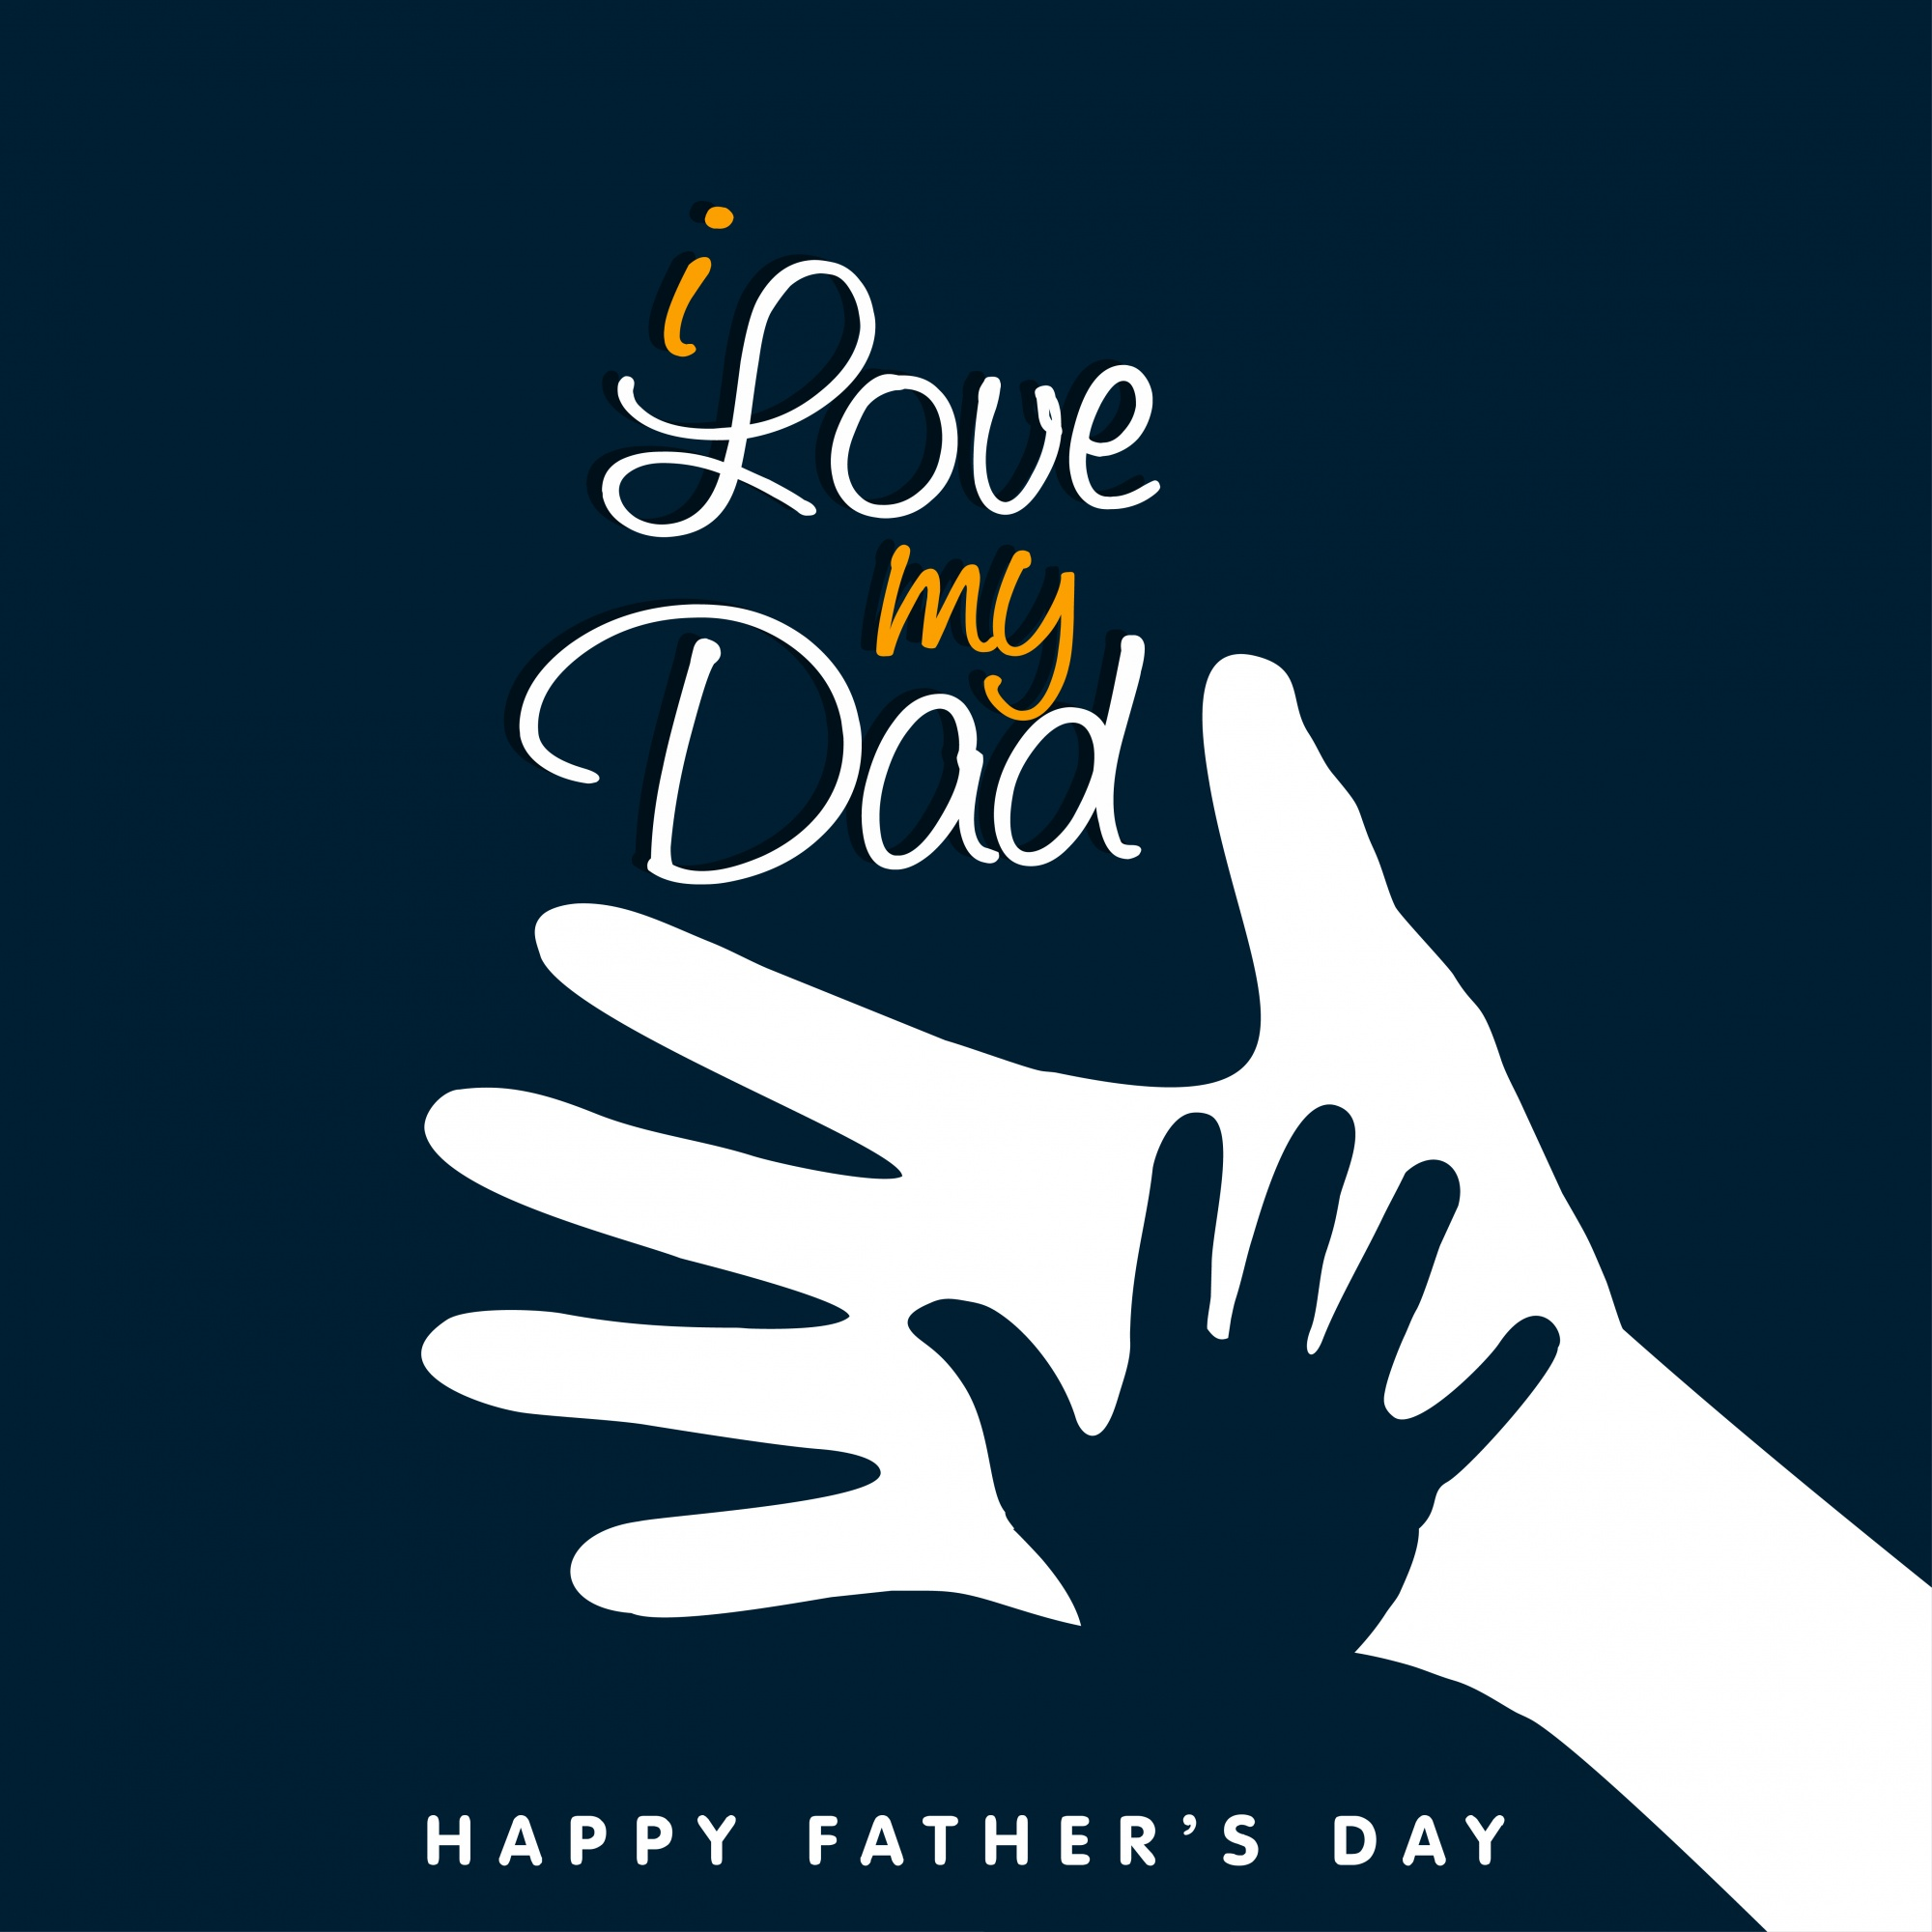 Greeting card with nice message of father's day